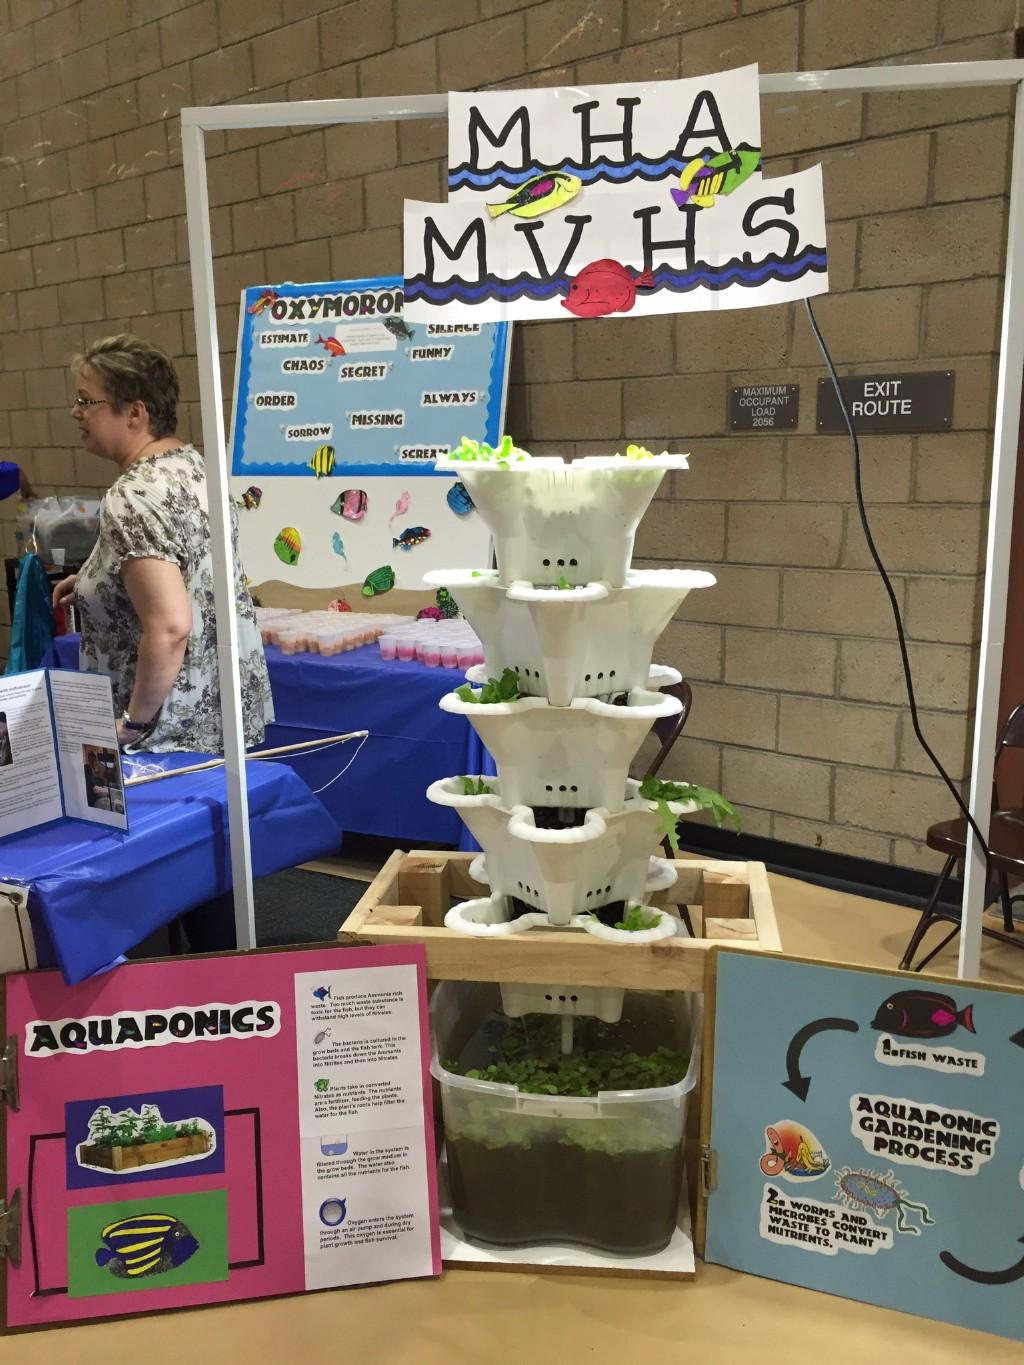 Students science fair project on Aquaponics